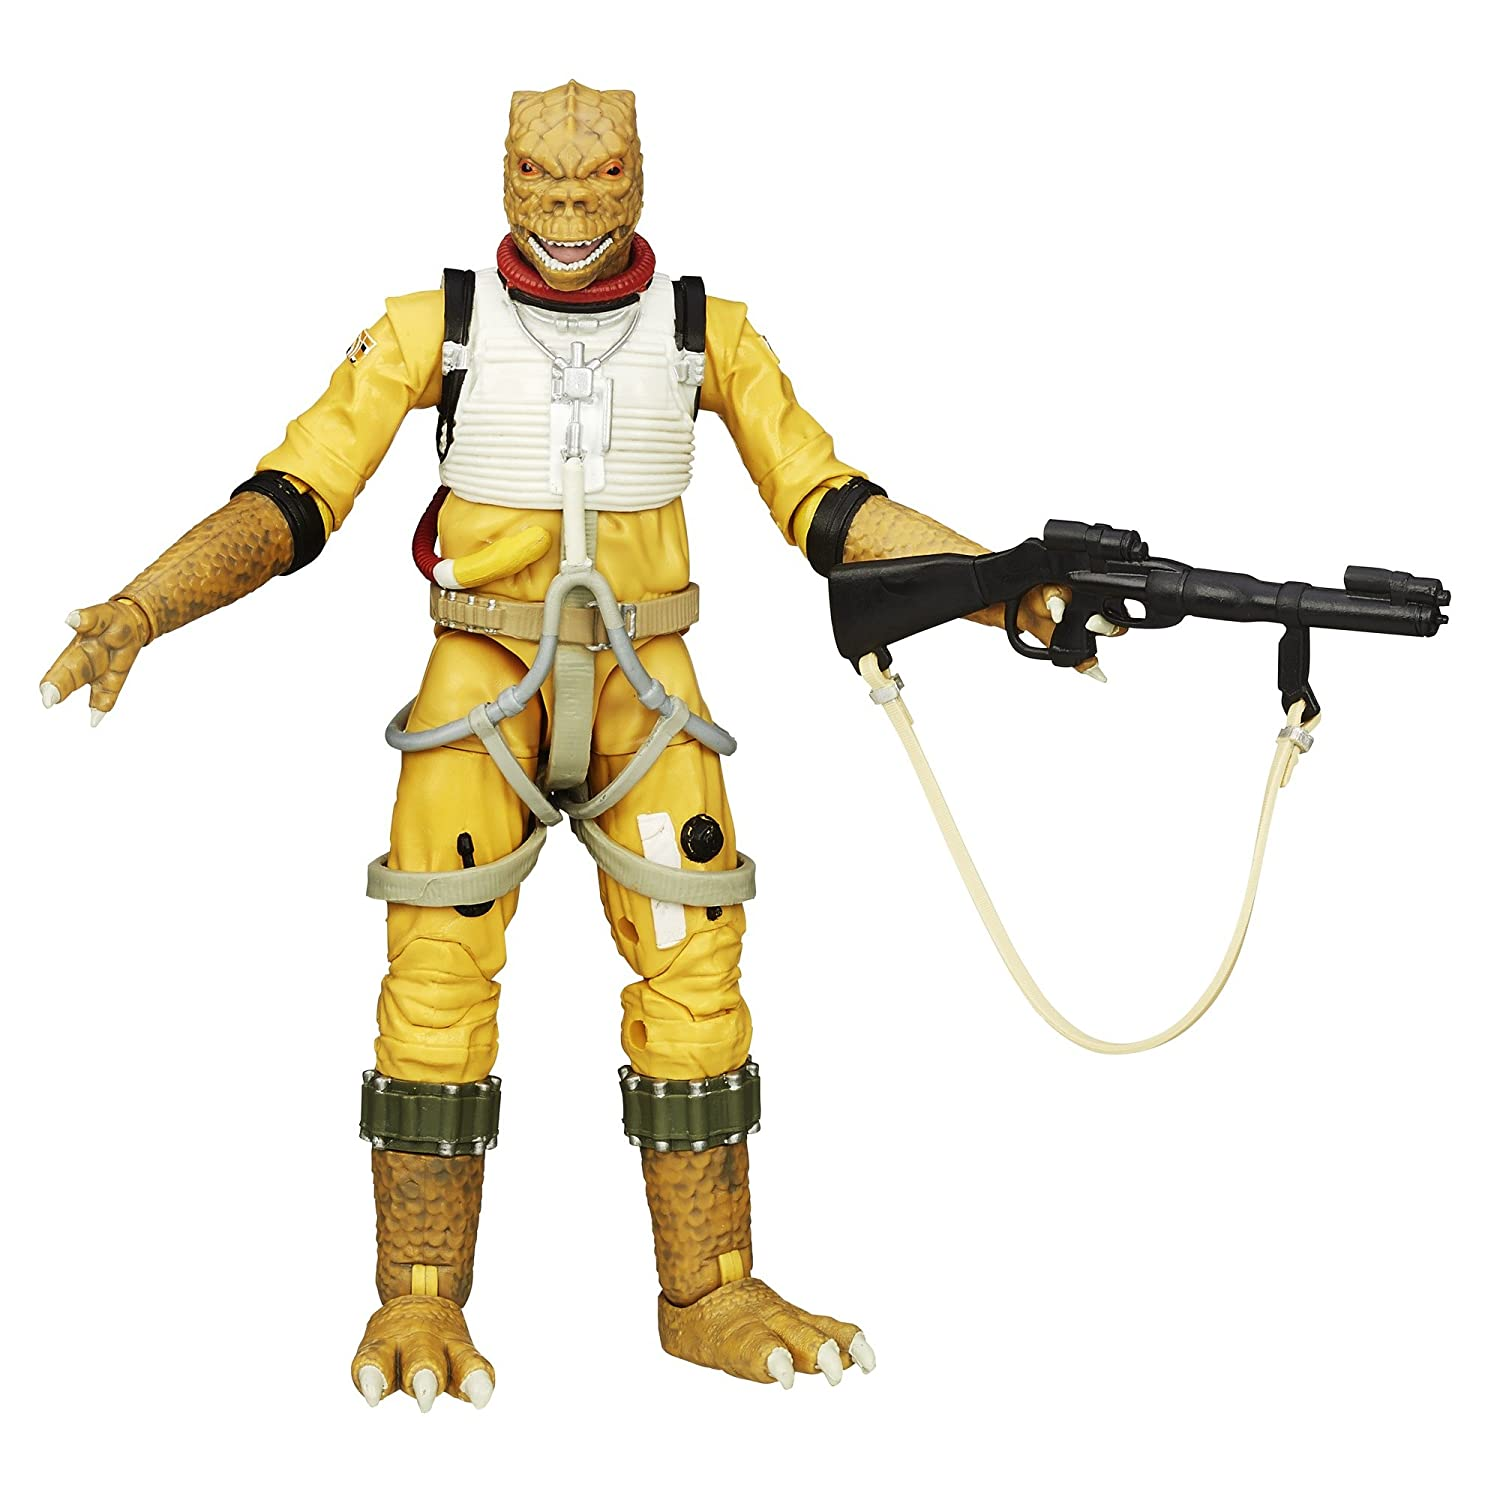 Star Wars The Black Series Bossk 6 Figure lepin 05035 star wars death star limited edition model building kit millenniums blocks puzzle compatible legoed 75159